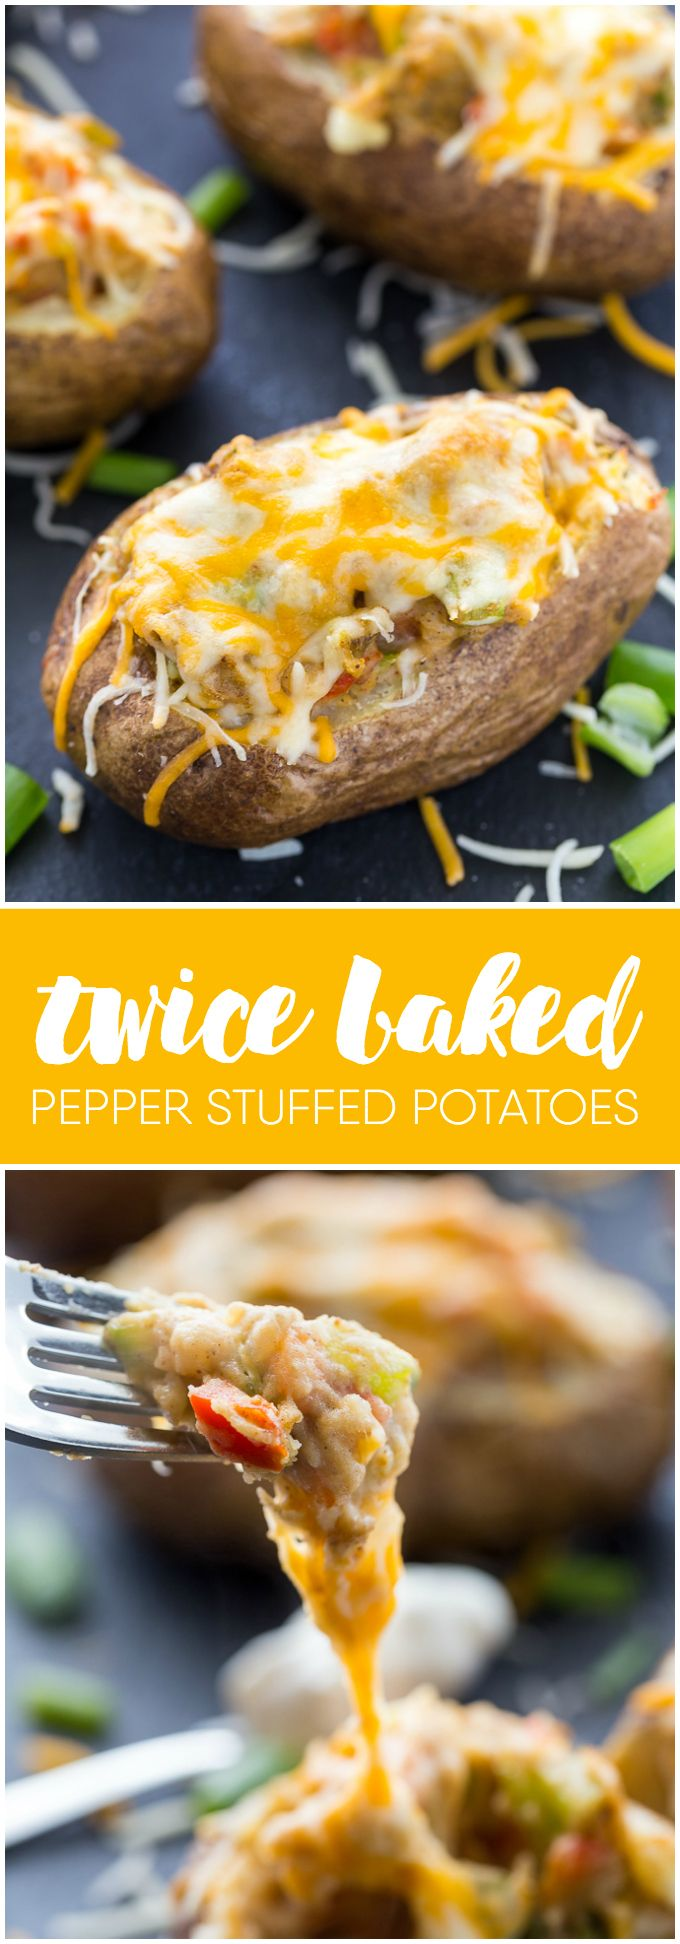 Twice Baked Pepper Stuffed Potatoes - Spicy, creamy and loaded with delicious flavour. Serve as a side dish with steak or grilled chicken for a hearty meal.